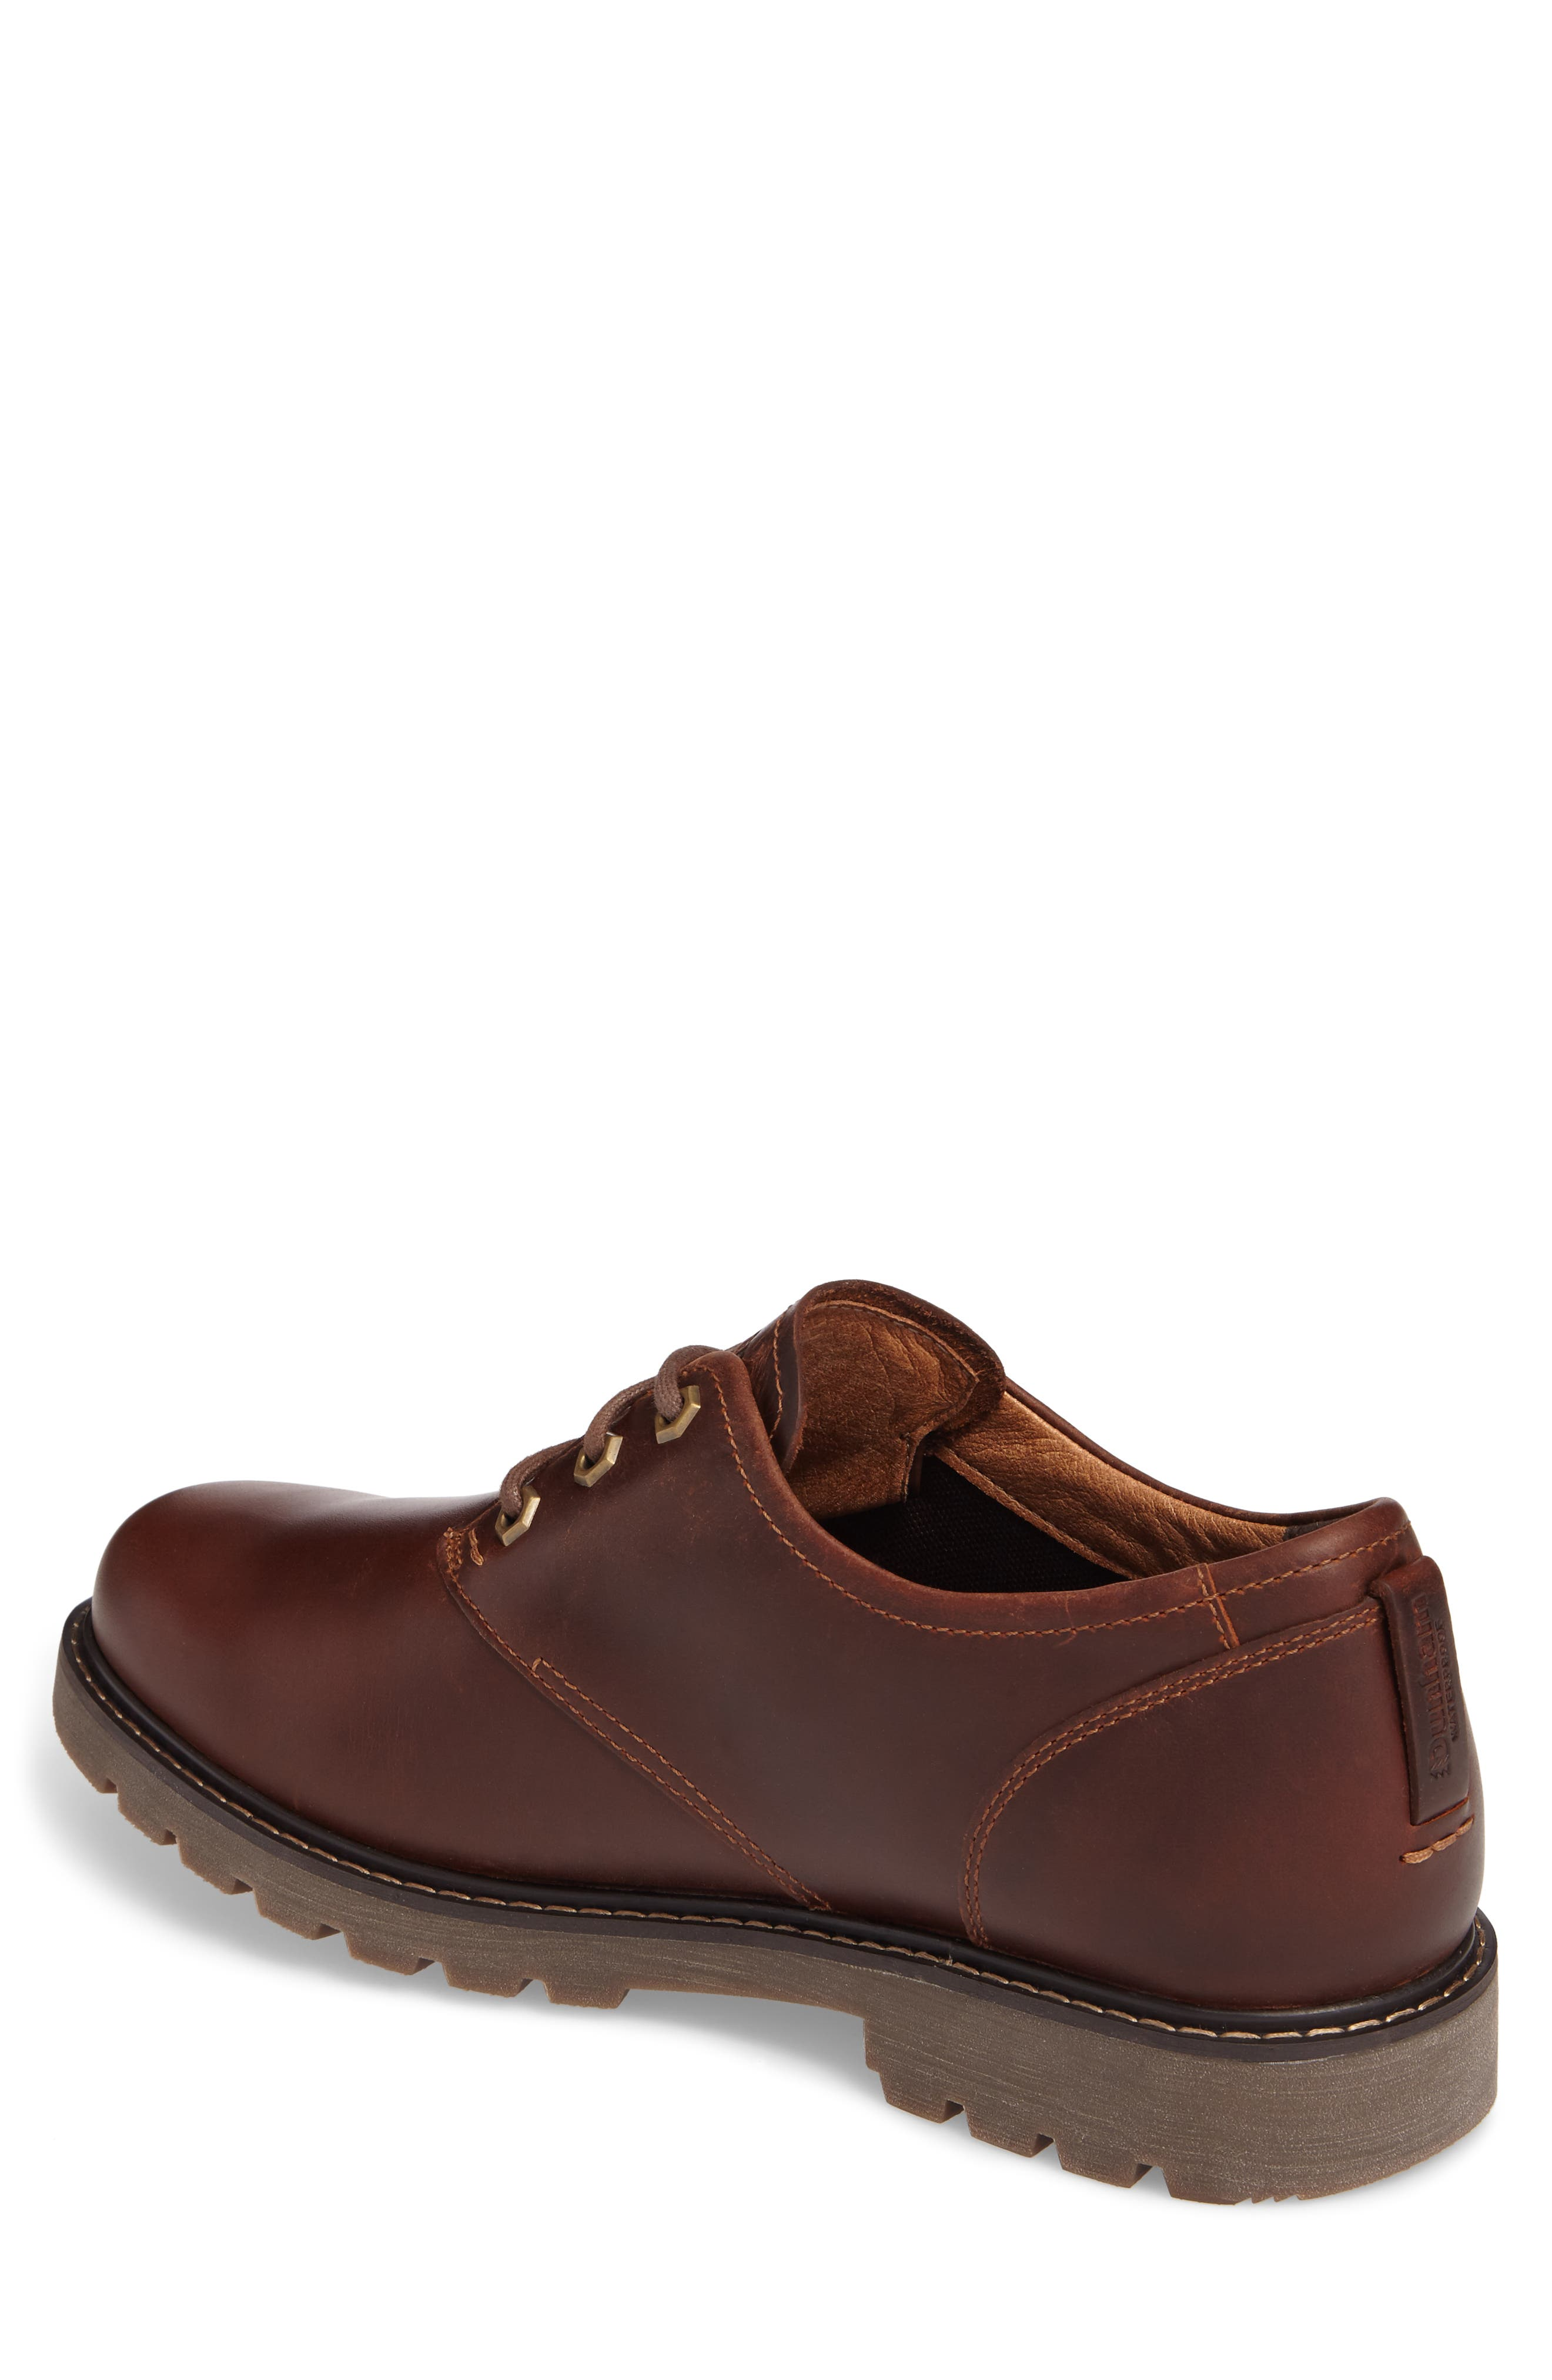 Alternate Image 2  - Dunham Royalton Plain Toe Derby (Men)